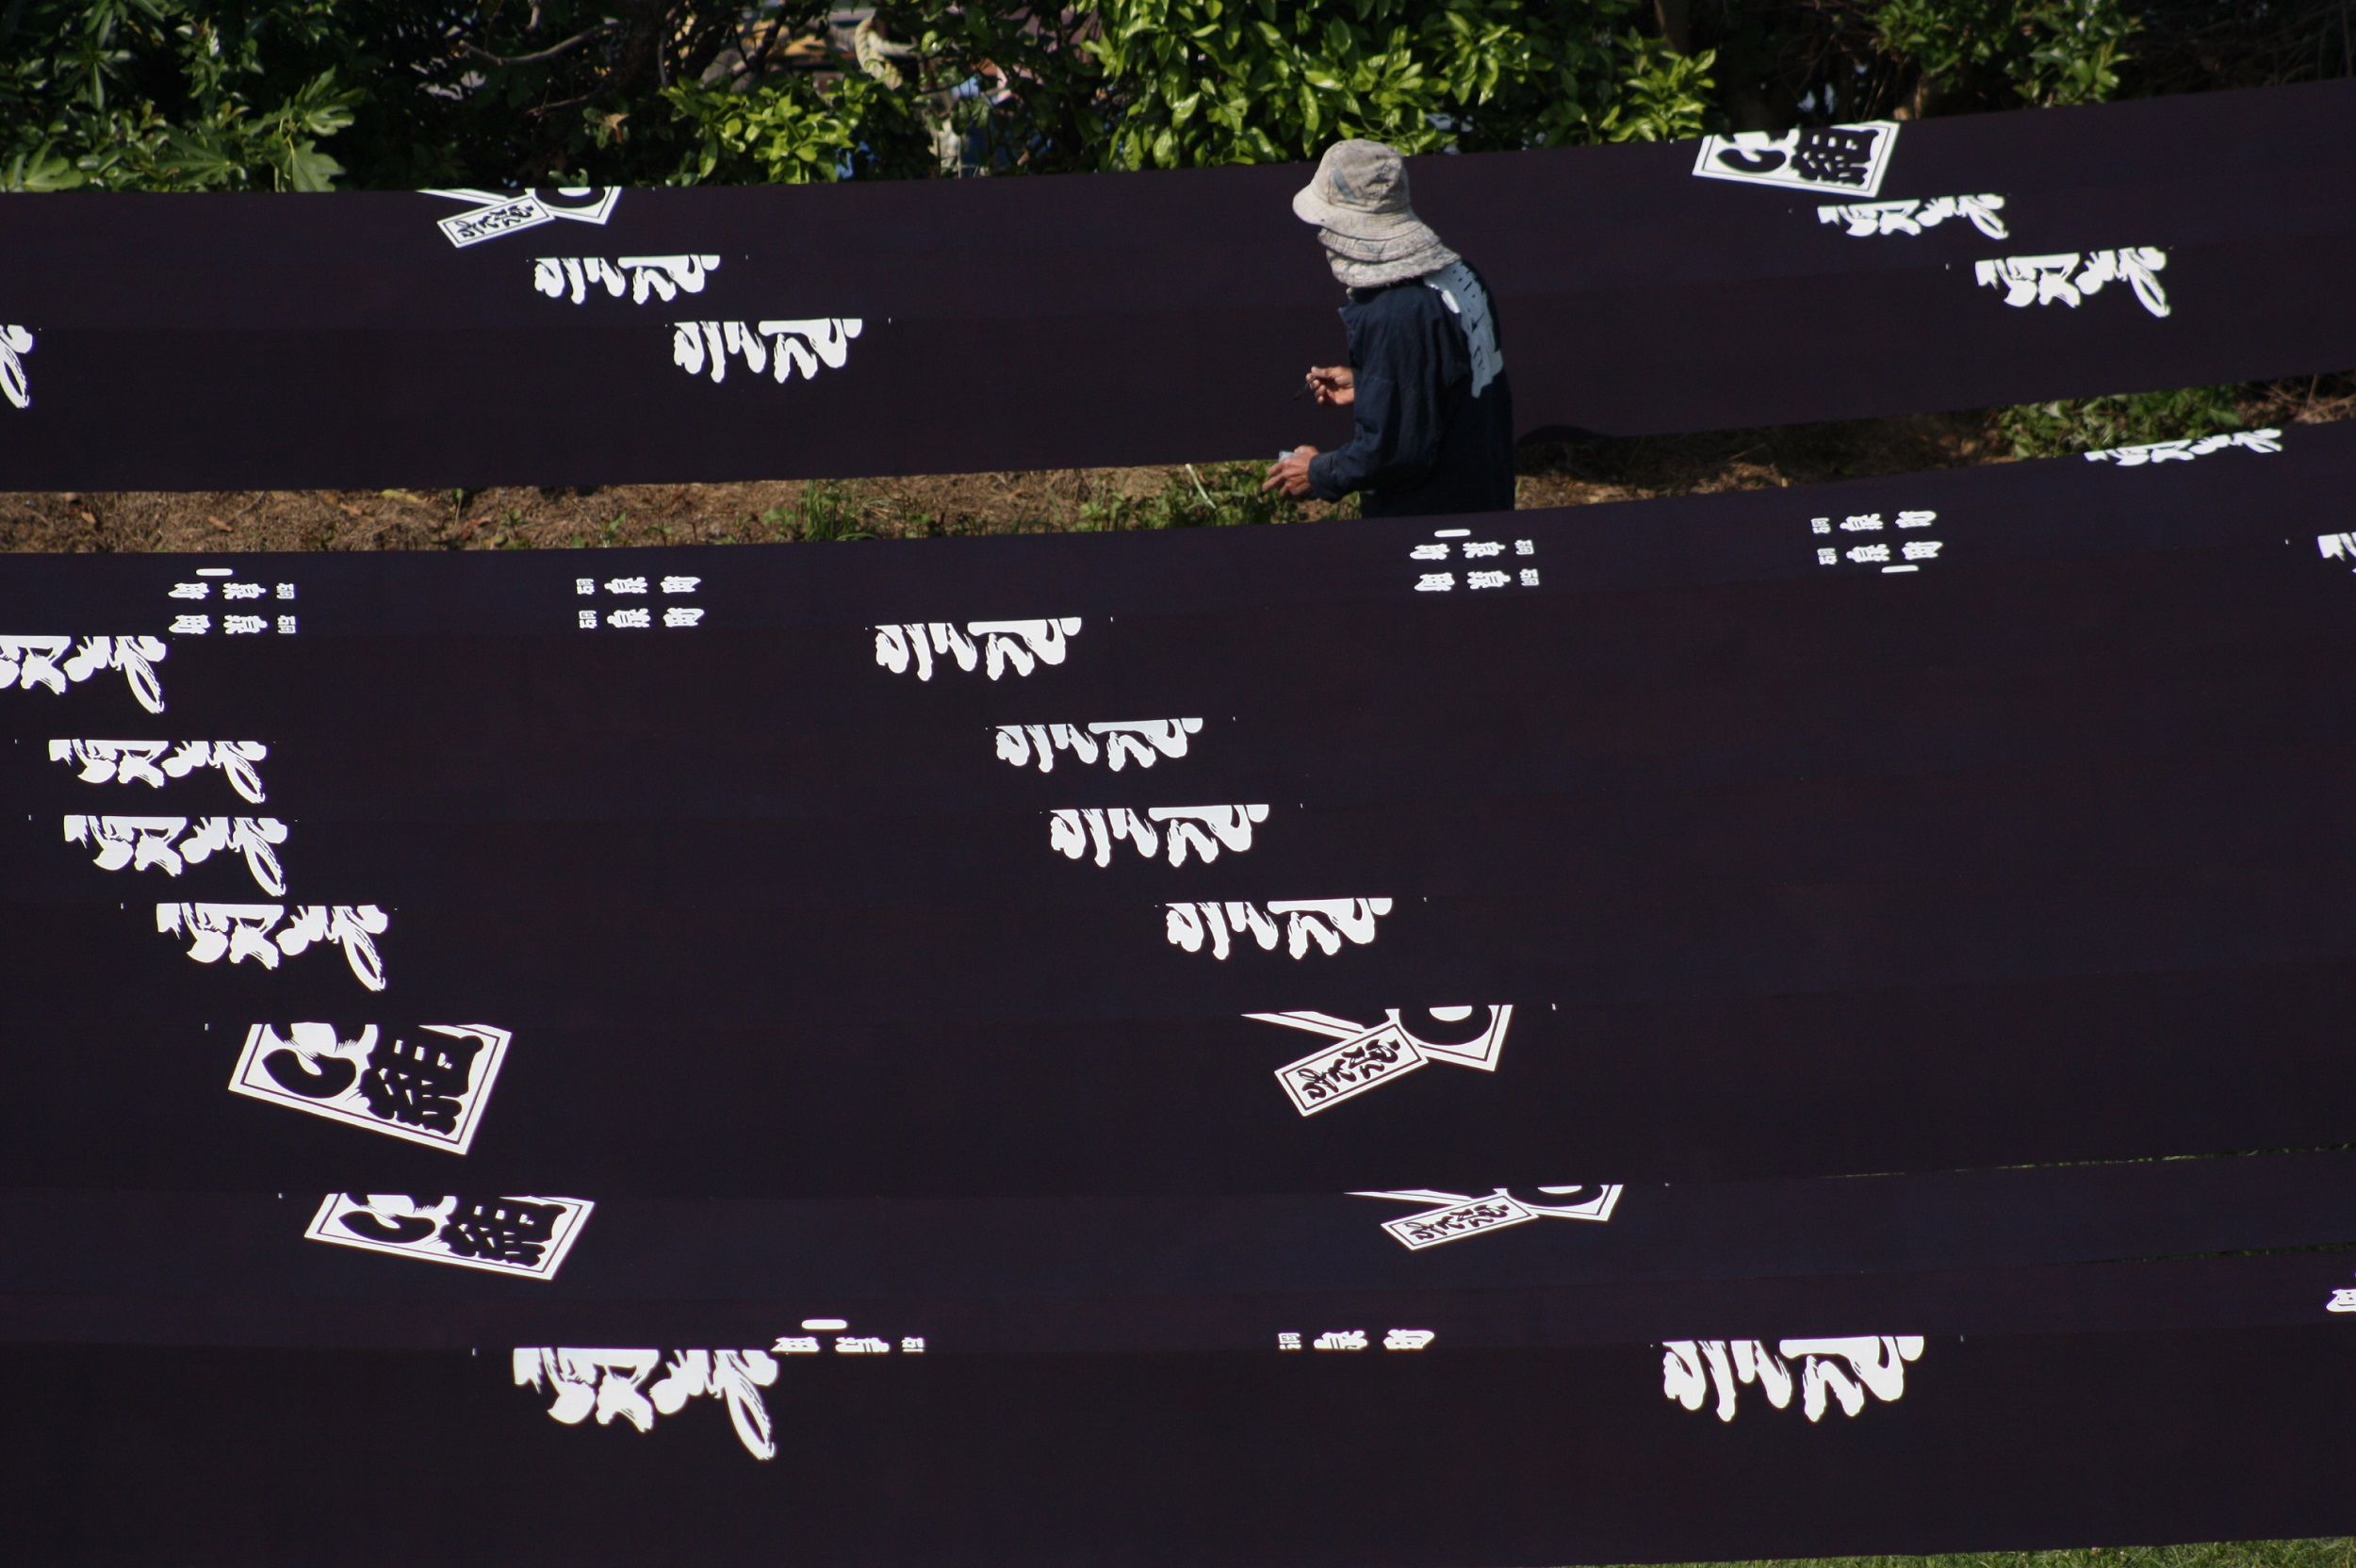 Drying the indigo dyed and katazome printed textile in open air. The patterns are traditional Japanese writing styles, such as Edo-moji and Kakuji.